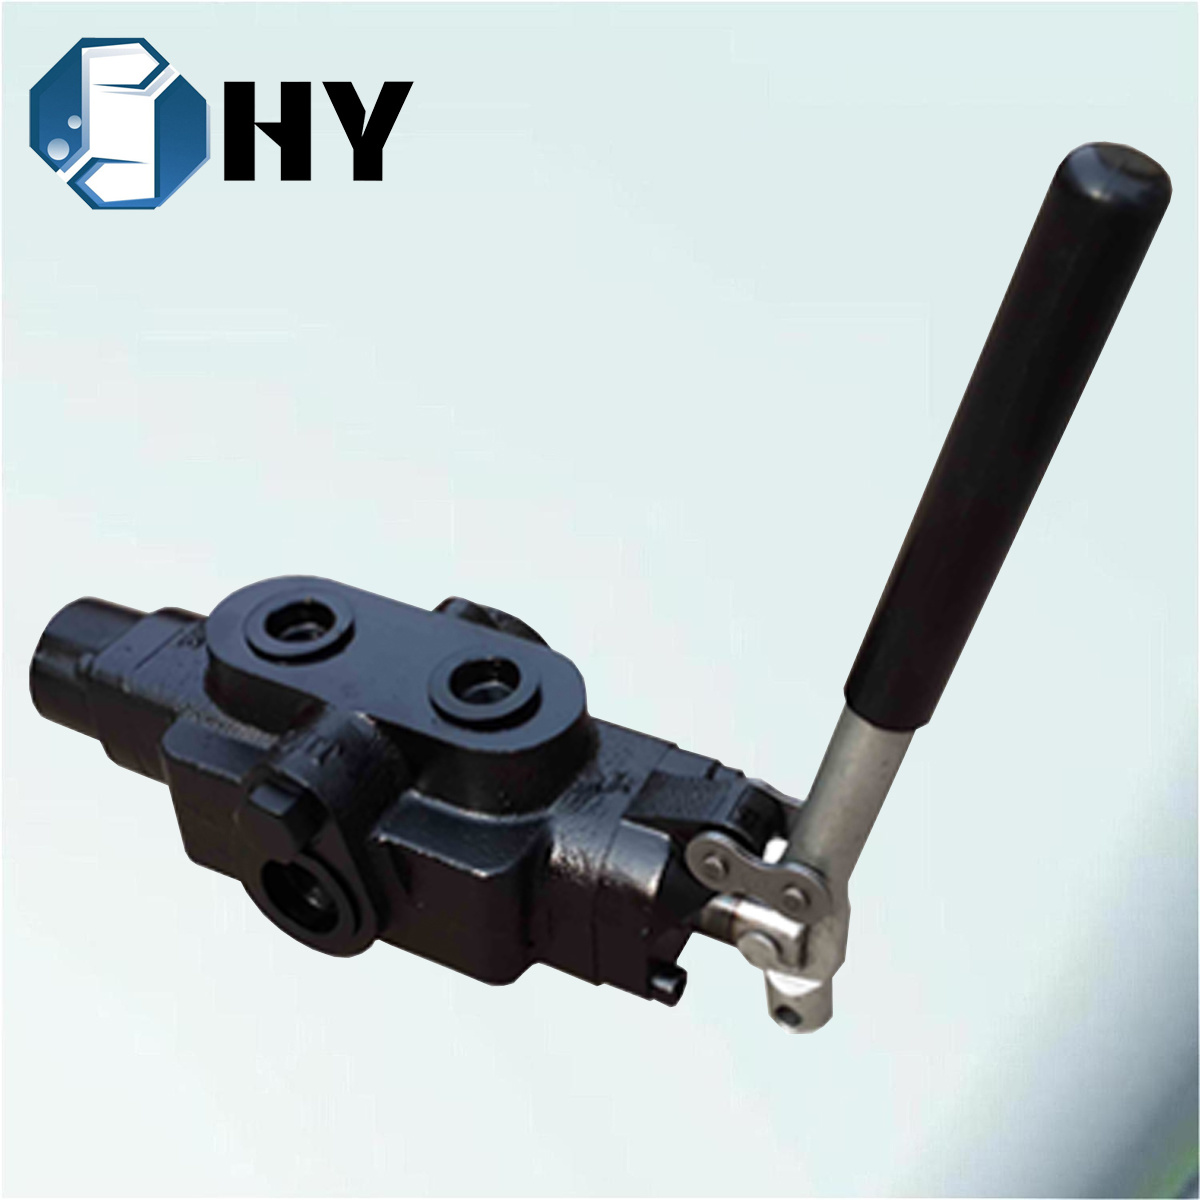 Vertical Splitter Valve Hydraulic Control Handle for North America Market